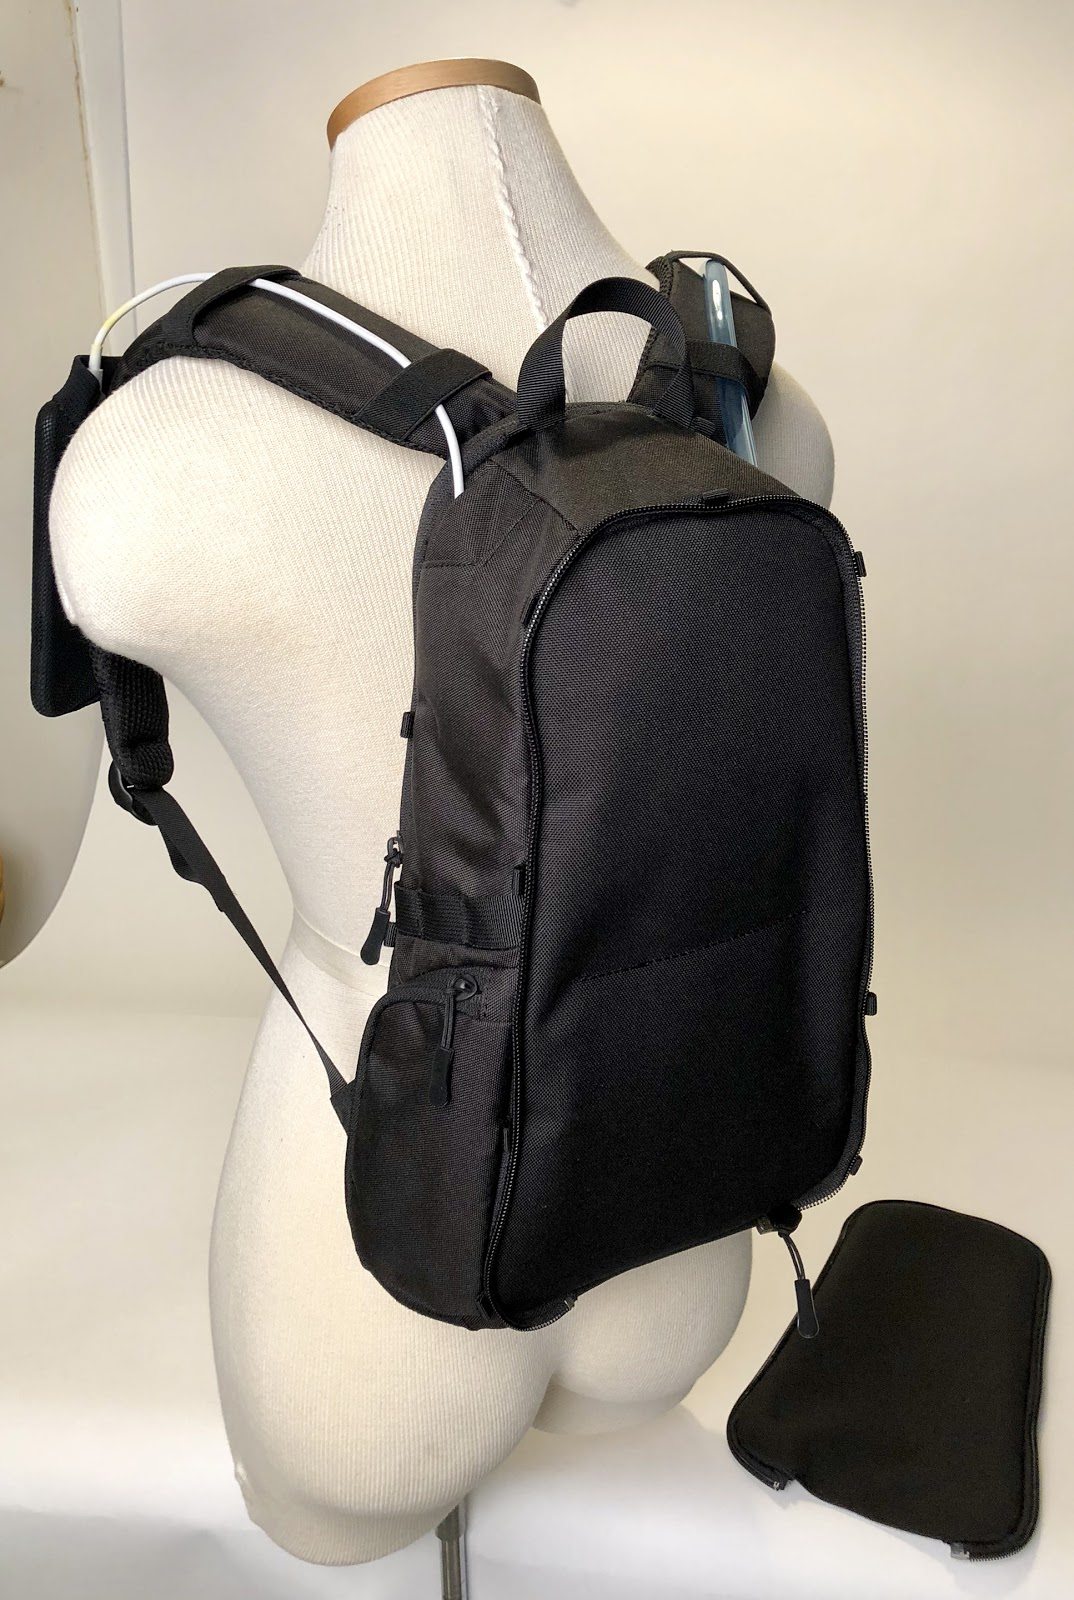 inventing-an-anti-theft-bag-for-music-festival-goers